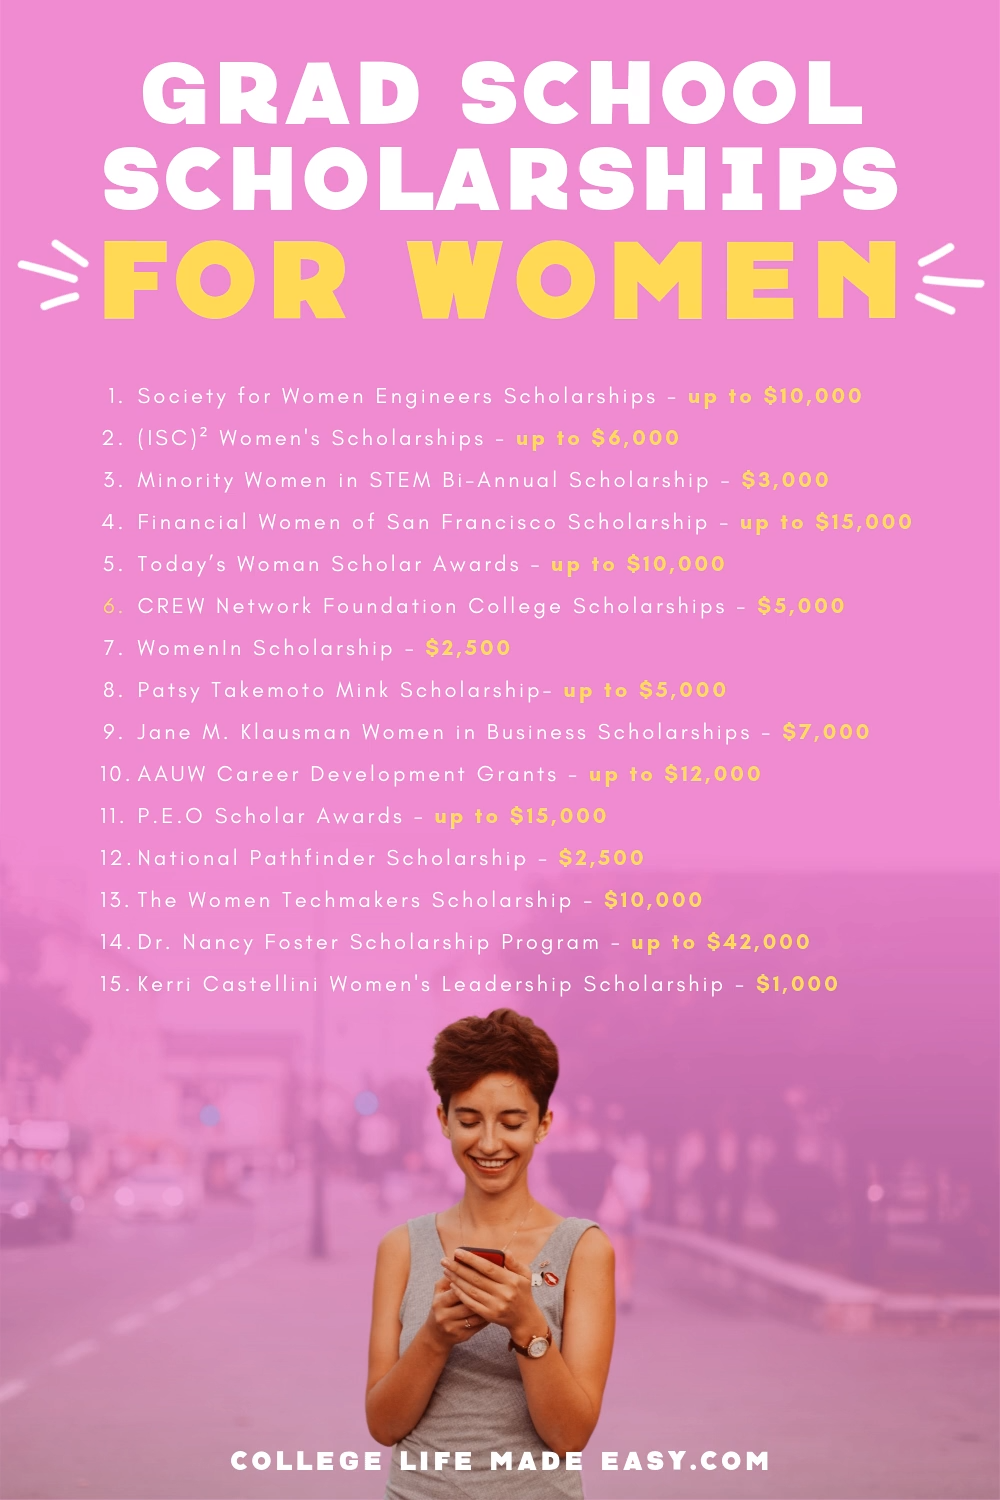 def happy I found this list of graduate school scholarships for women! (click to see all 38) #gradstudent #gradschool #scholarships #scholarshipsforwomen